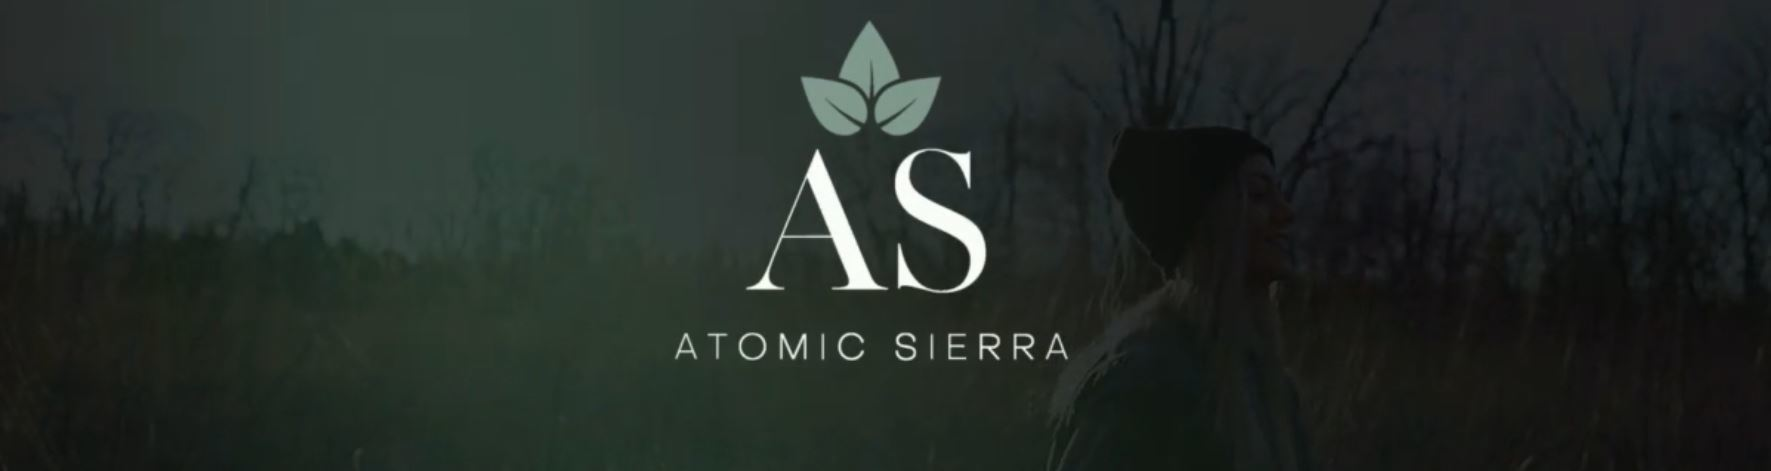 Atomic Sierra - Fashion For The Planet